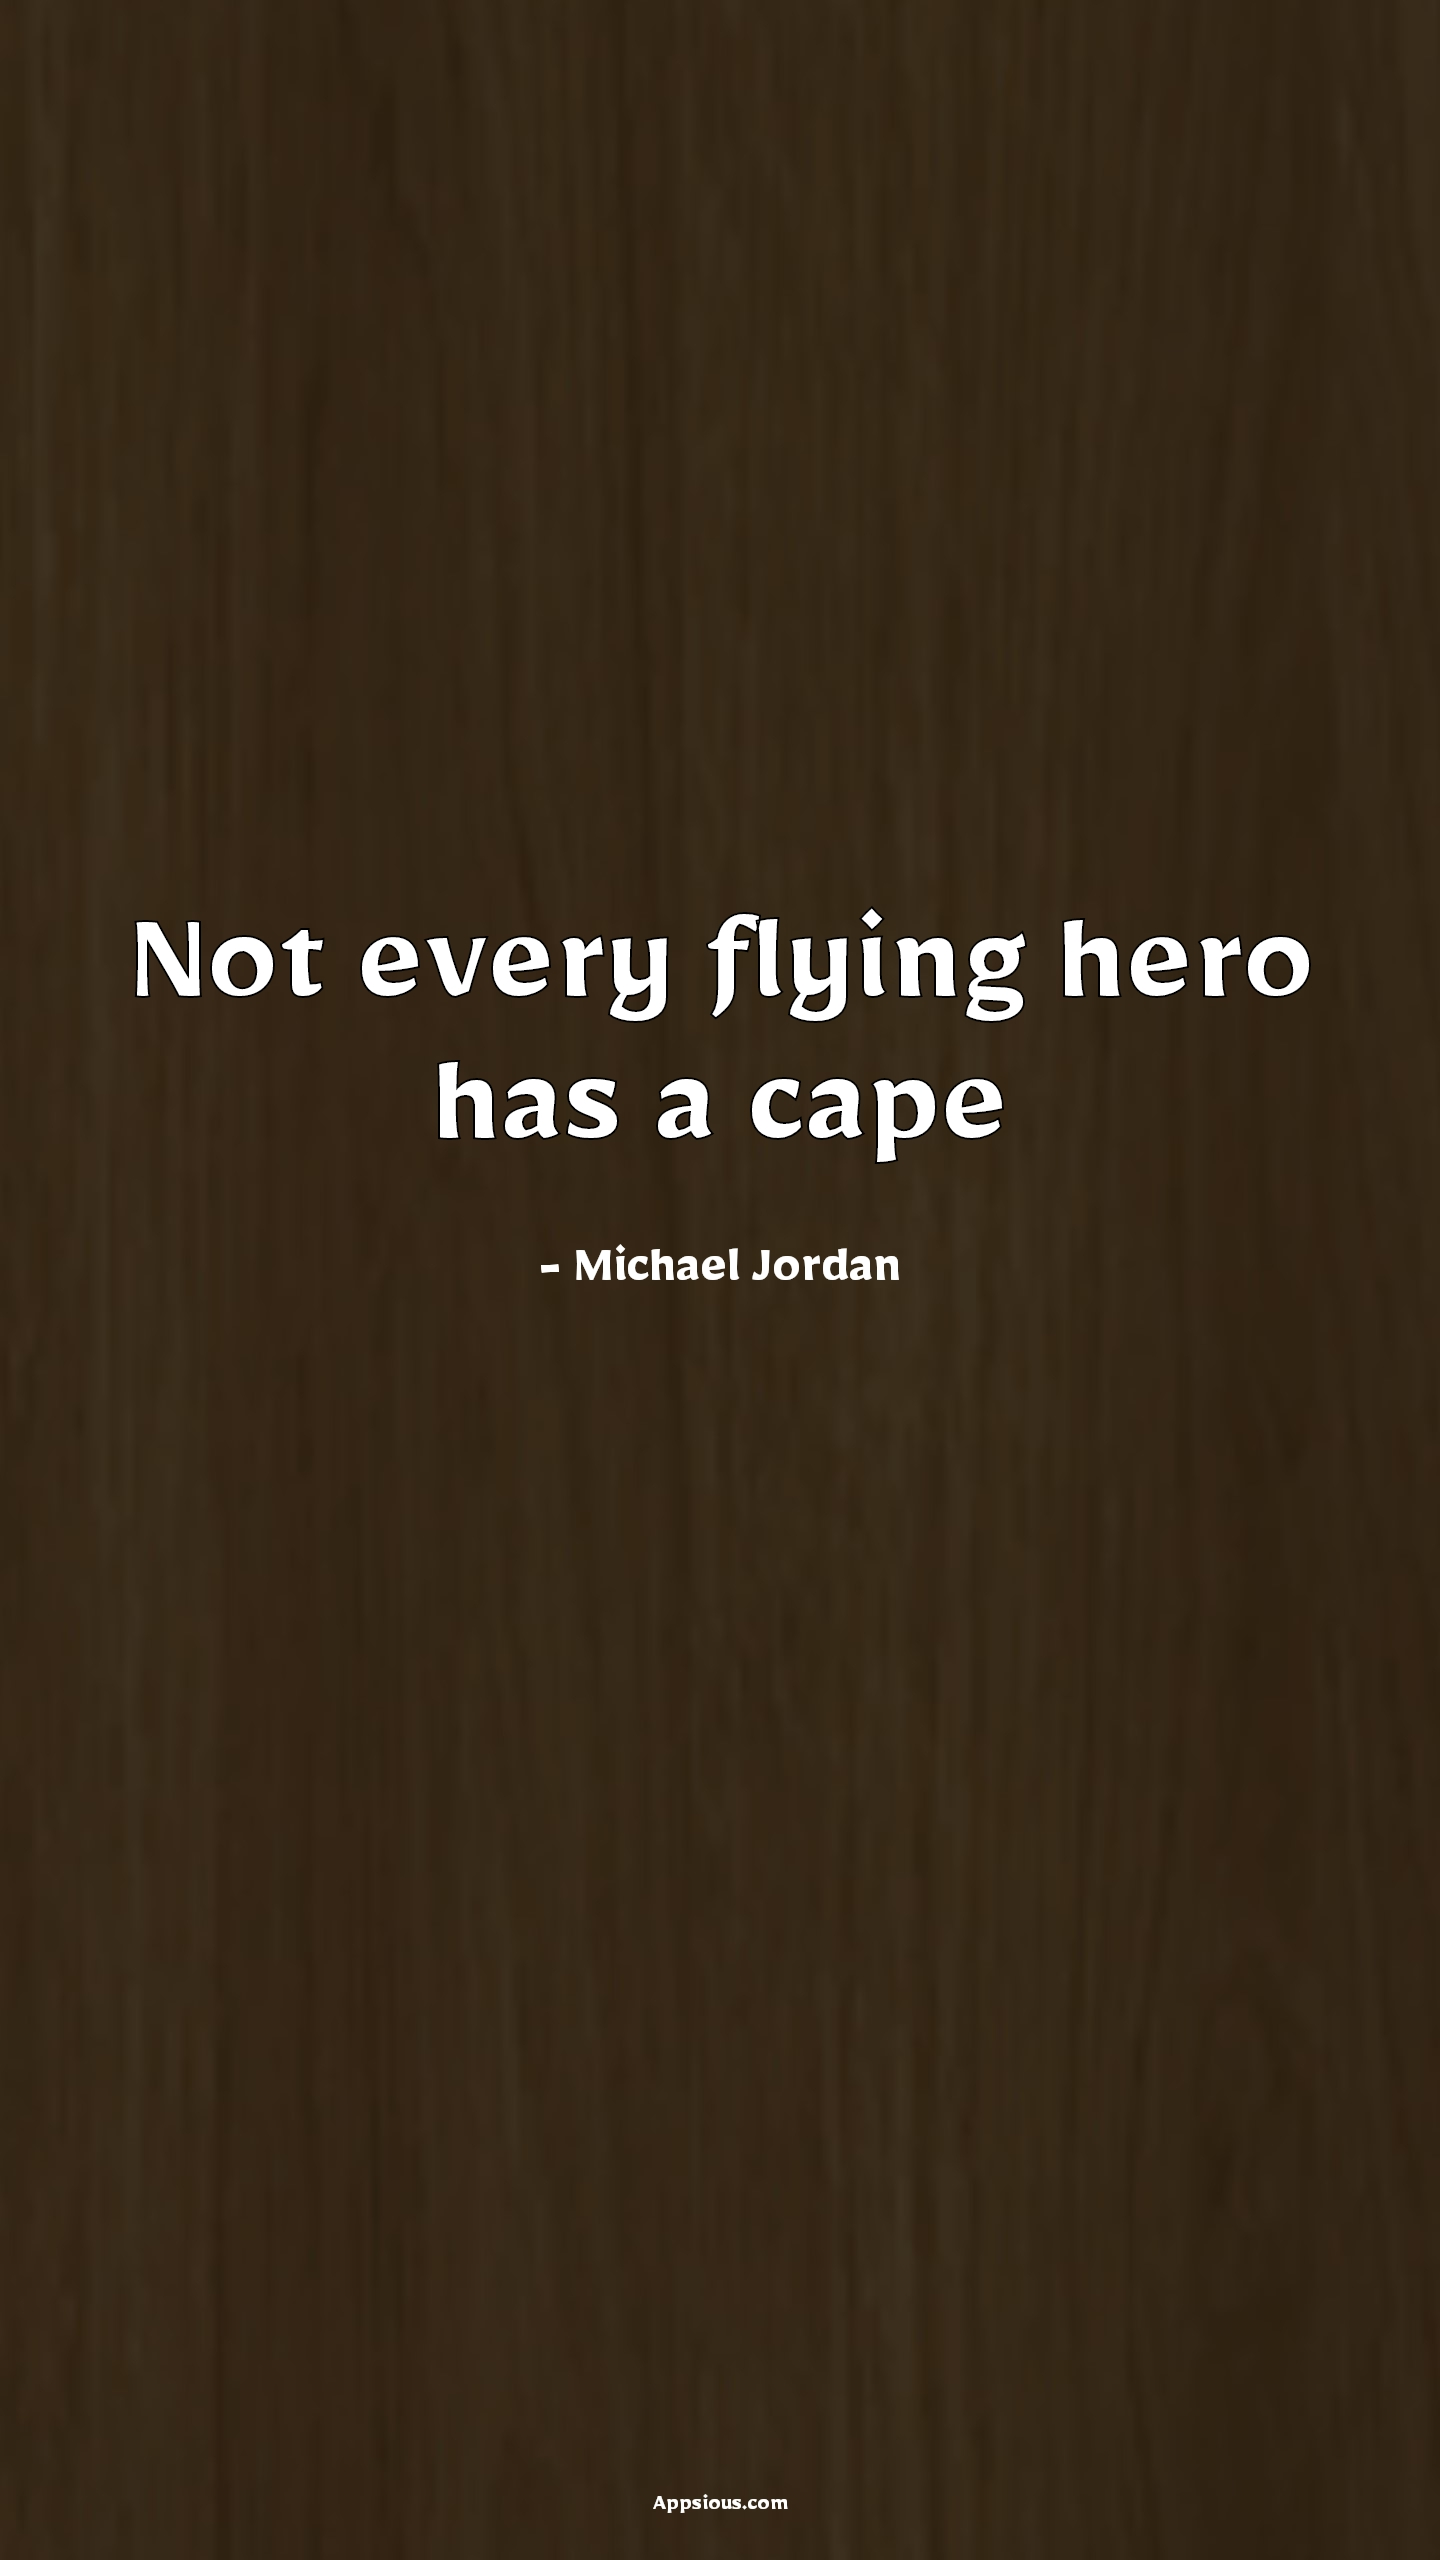 Not every flying hero has a cape